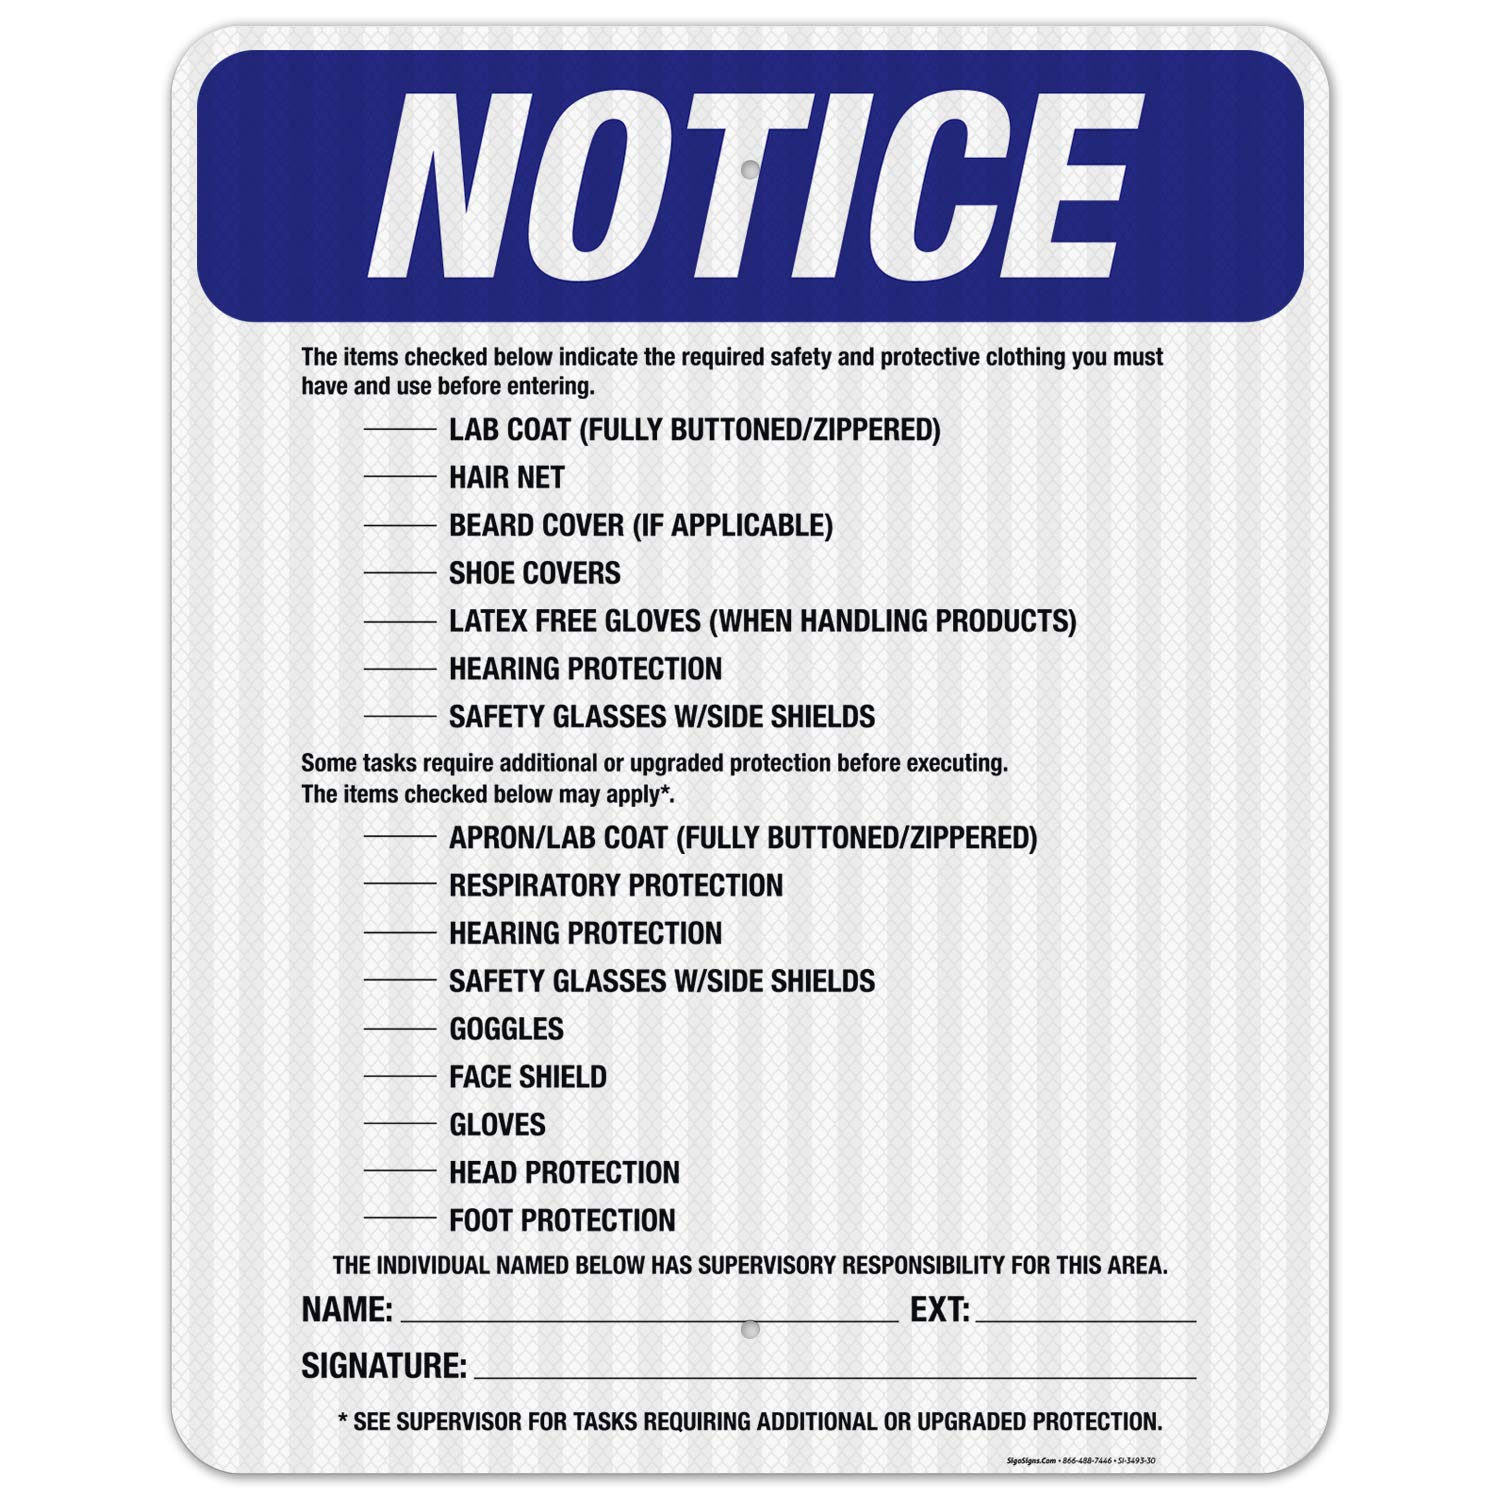 Checked Items Below are Required Noti Before OSHA Max 78% OFF Sign discount Entering